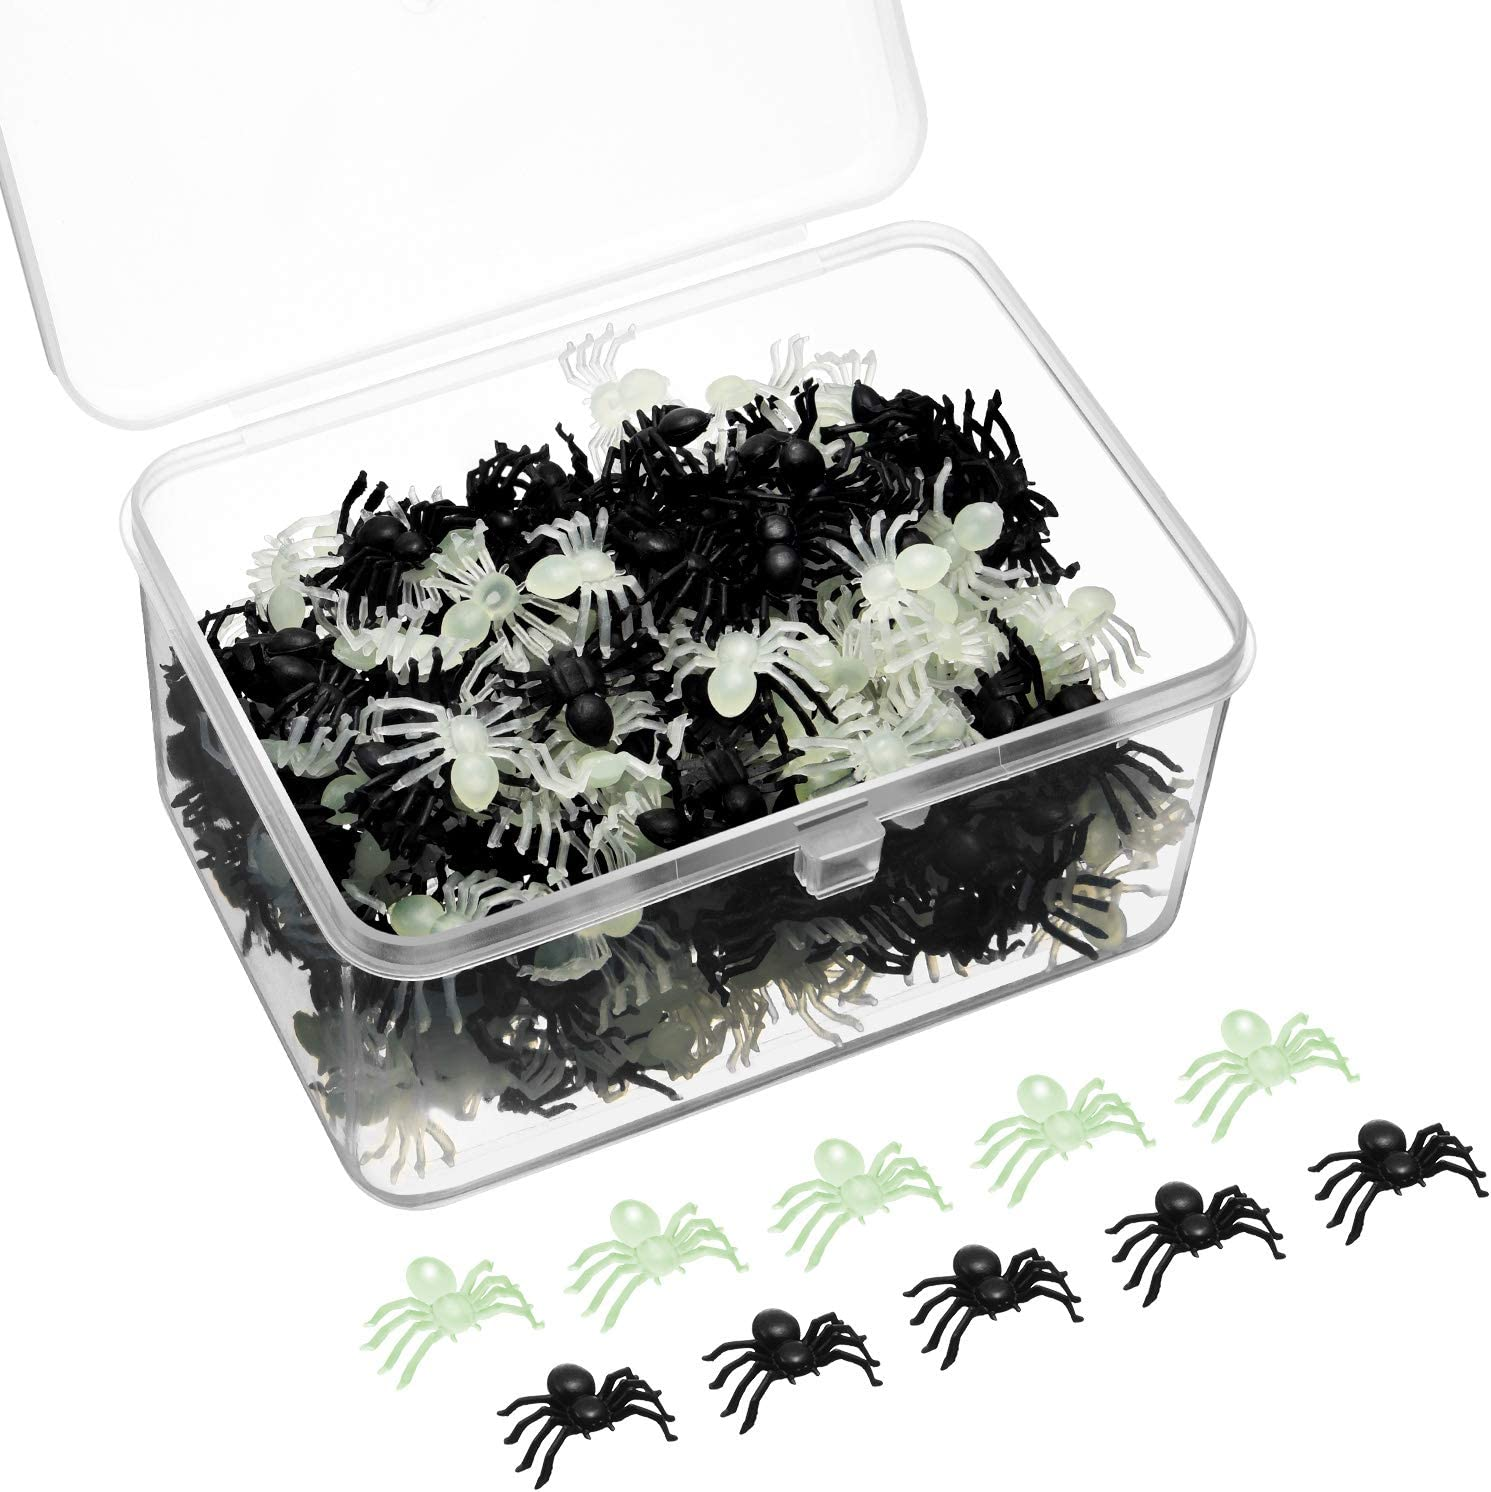 300 Pieces Mini Plastic Spiders Halloween Simulated Spiders Black and Luminous Spiders Realistic Prank Toy with Plastic Storage Box for Halloween Decor Supplies